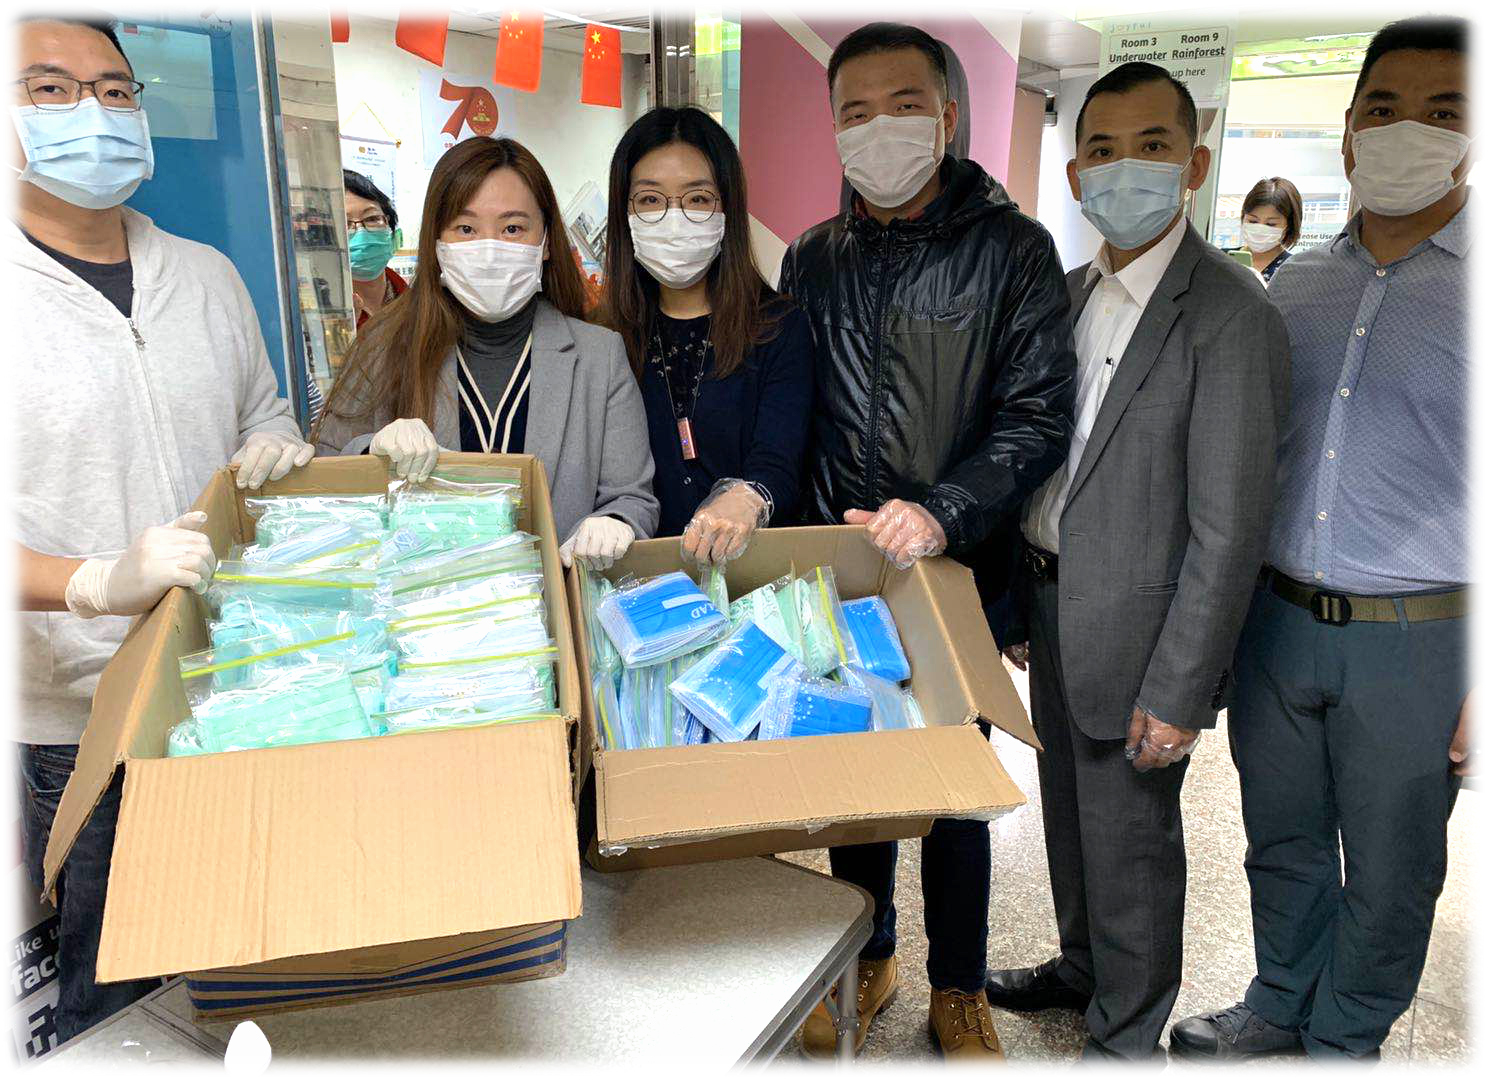 Amber Hill Holdings Donates 5,000 Protective Masks to the Elders